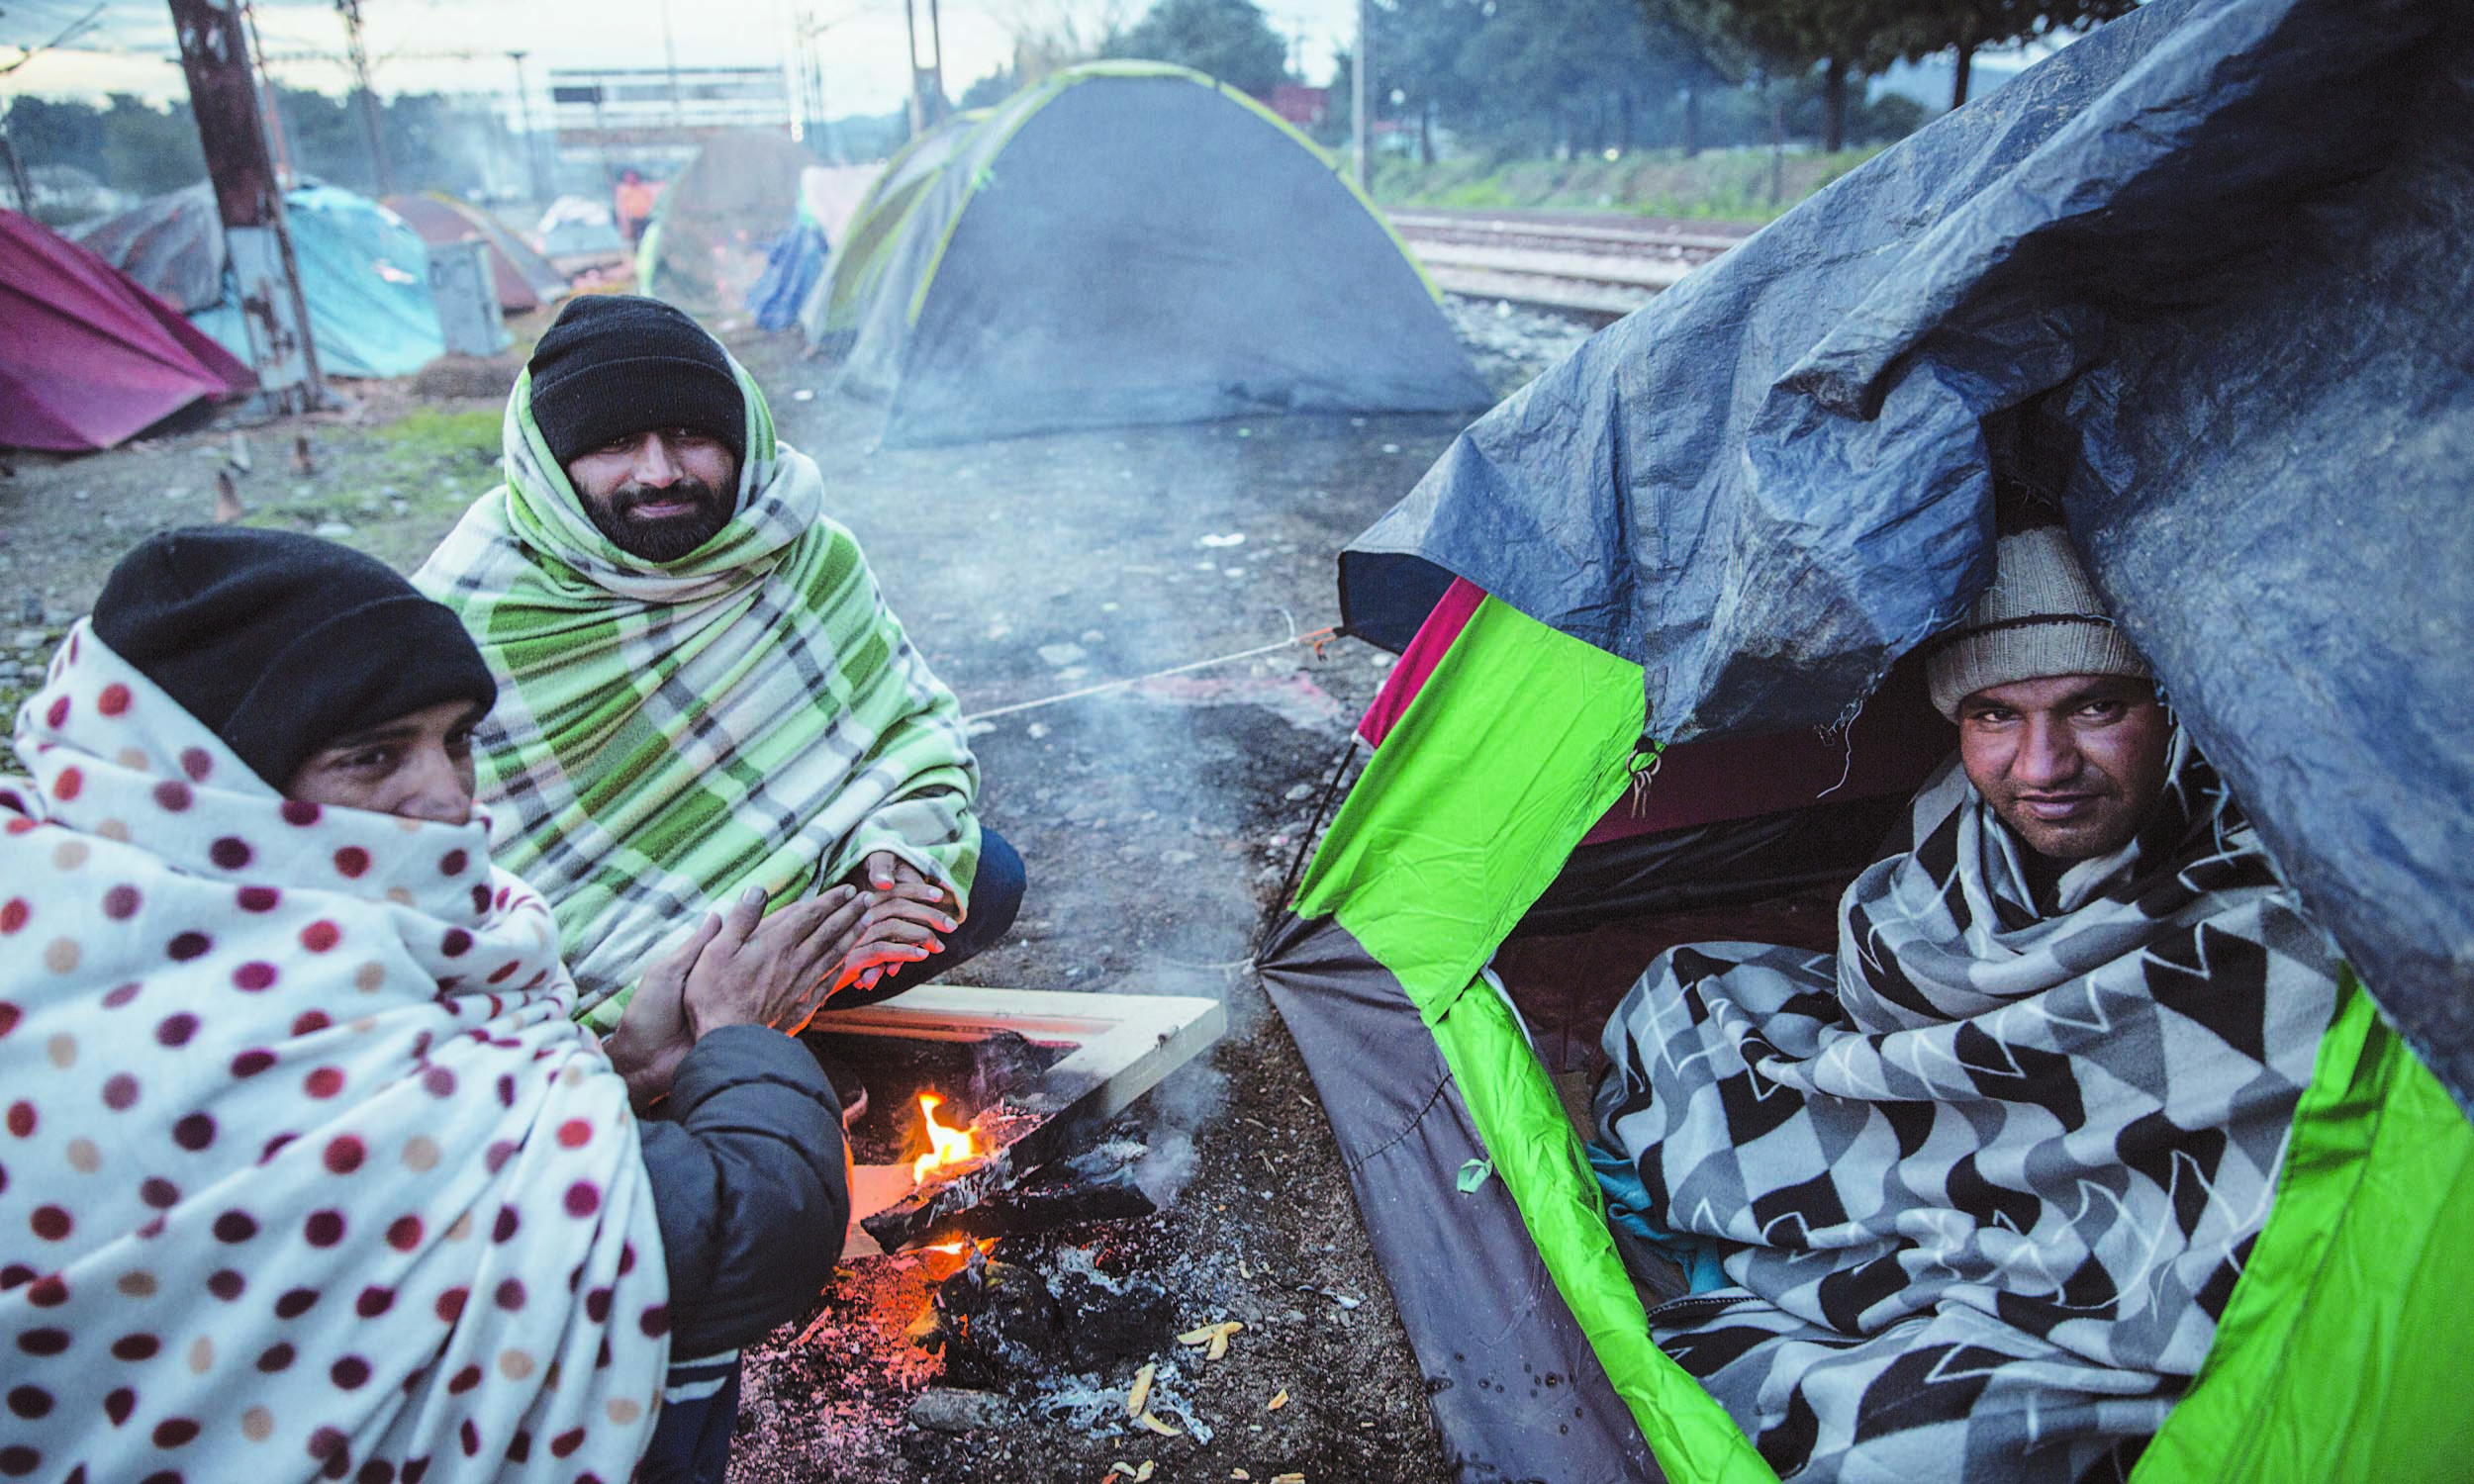 Pakistani migrants sit around a fire at Idomeni camp on a cold morning in November 2015 | Jodi Hilton